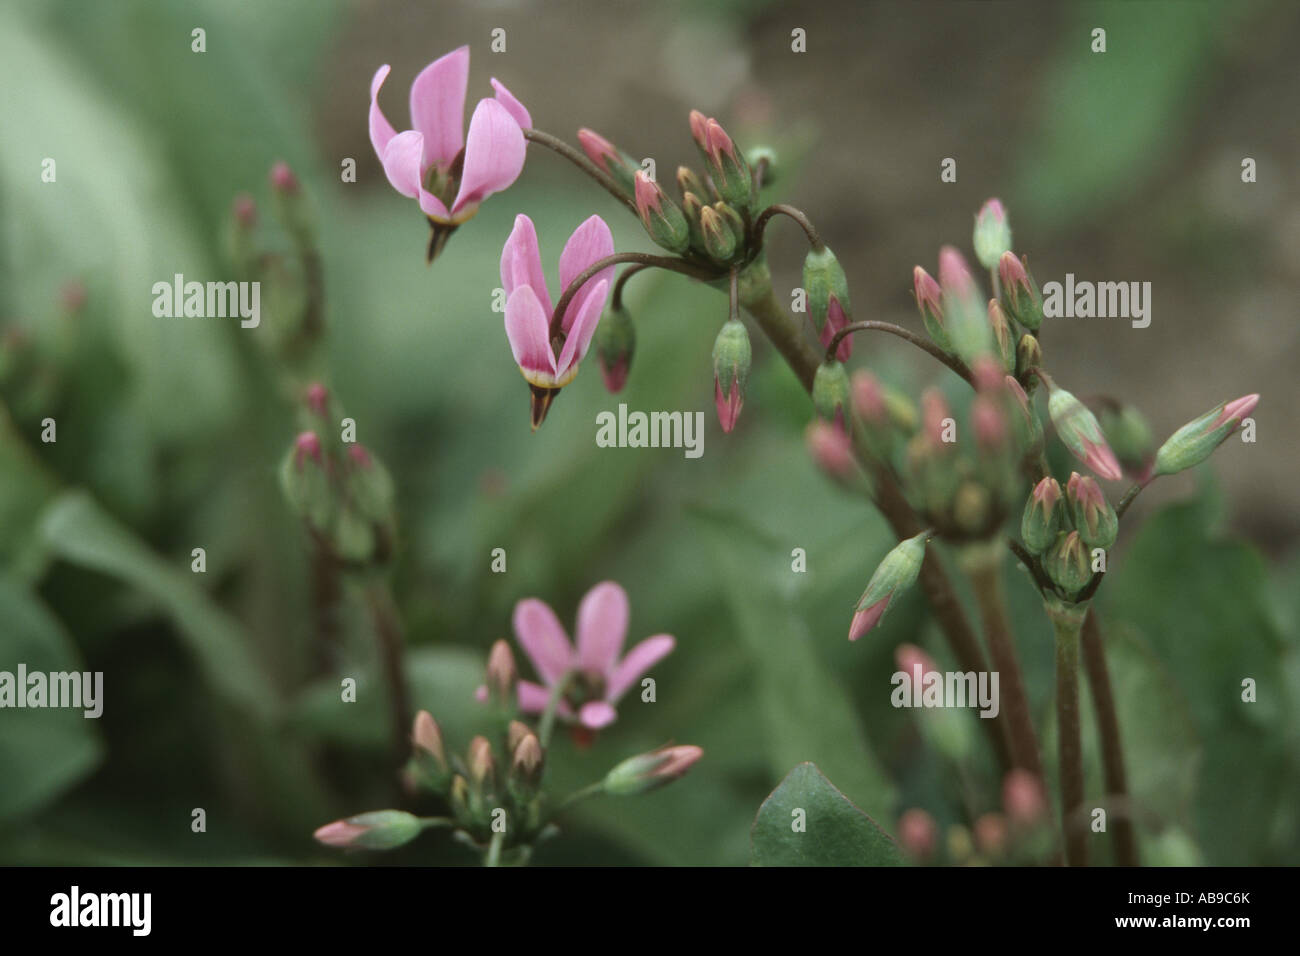 shootingstar, American cowslip (Dodecatheon meadia), blooming plant - Stock Image